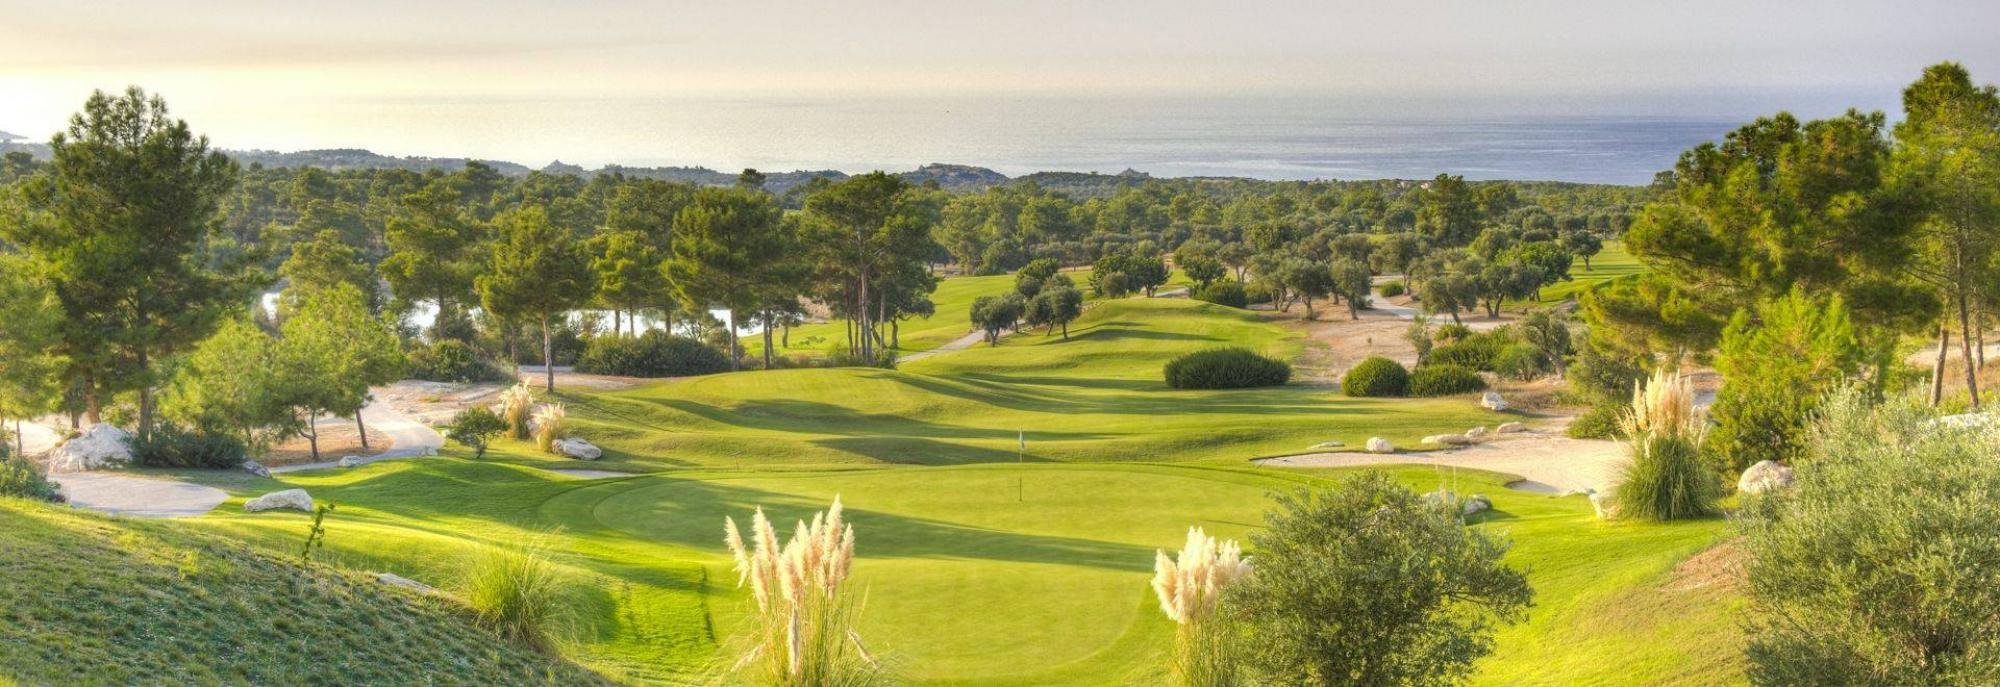 Play golf in the beautiful region of Northern Cyprus